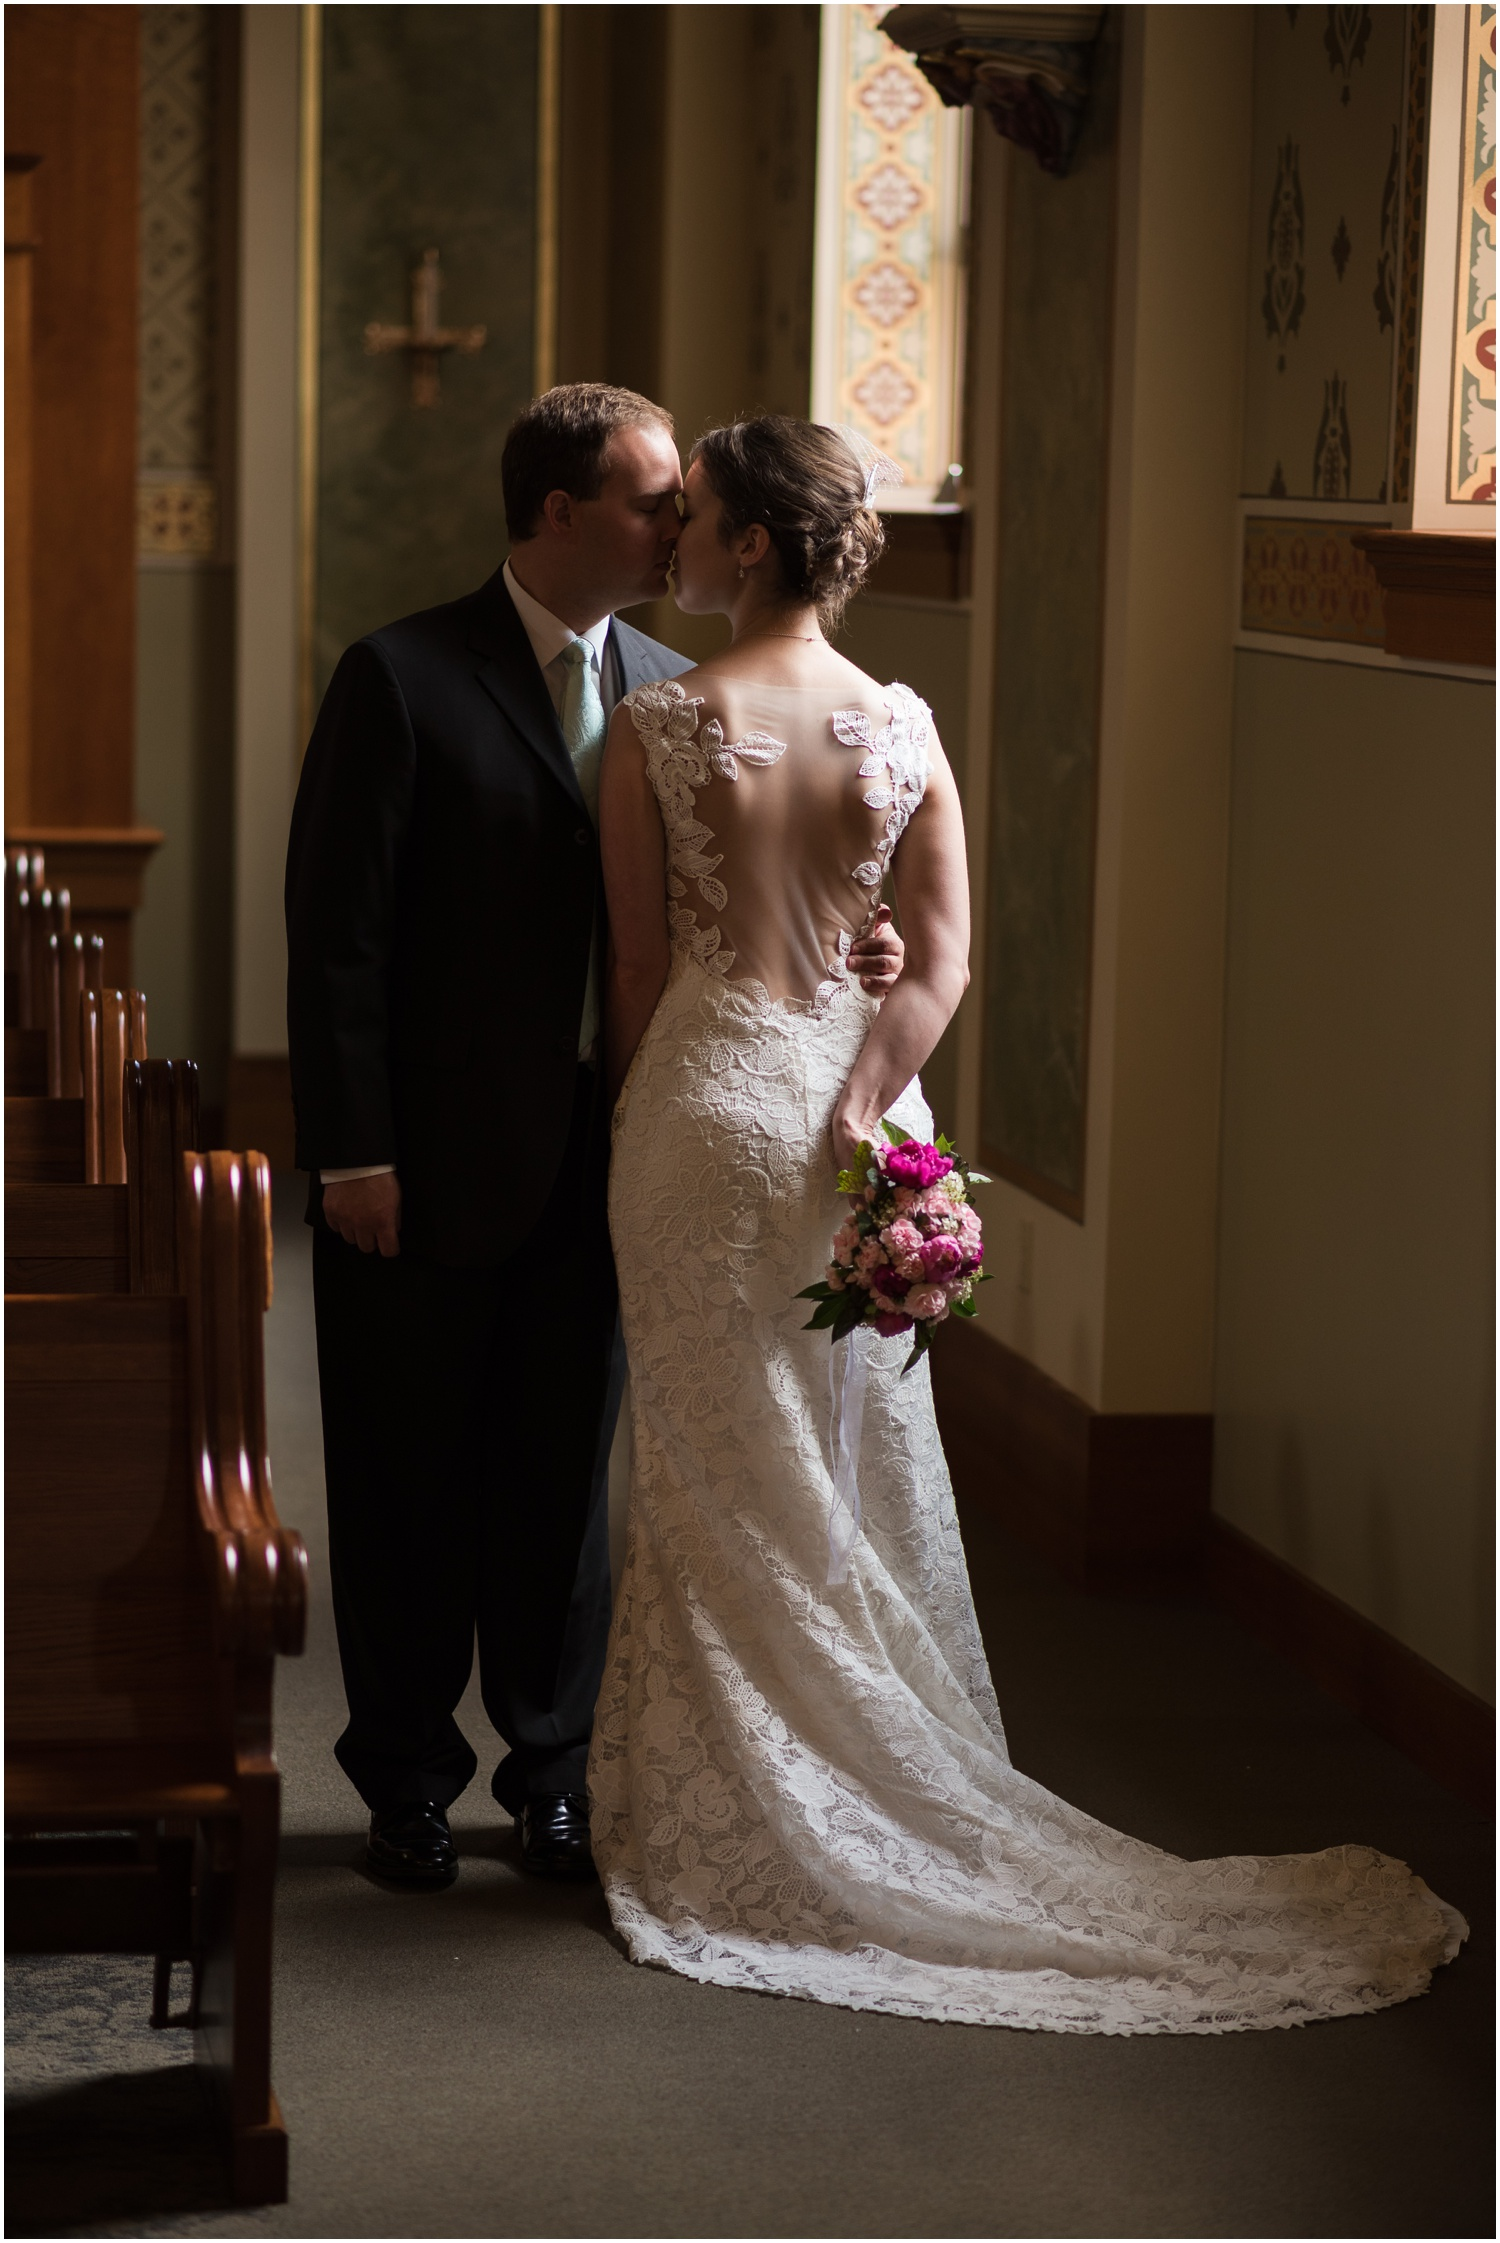 WISCONSIN DELLS WEDDING PHOTOGRAPHER | ST. CECILIA CATHOLIC CHURCH | WISCONSIN DELLS, WI | WEDDING_0253.jpg